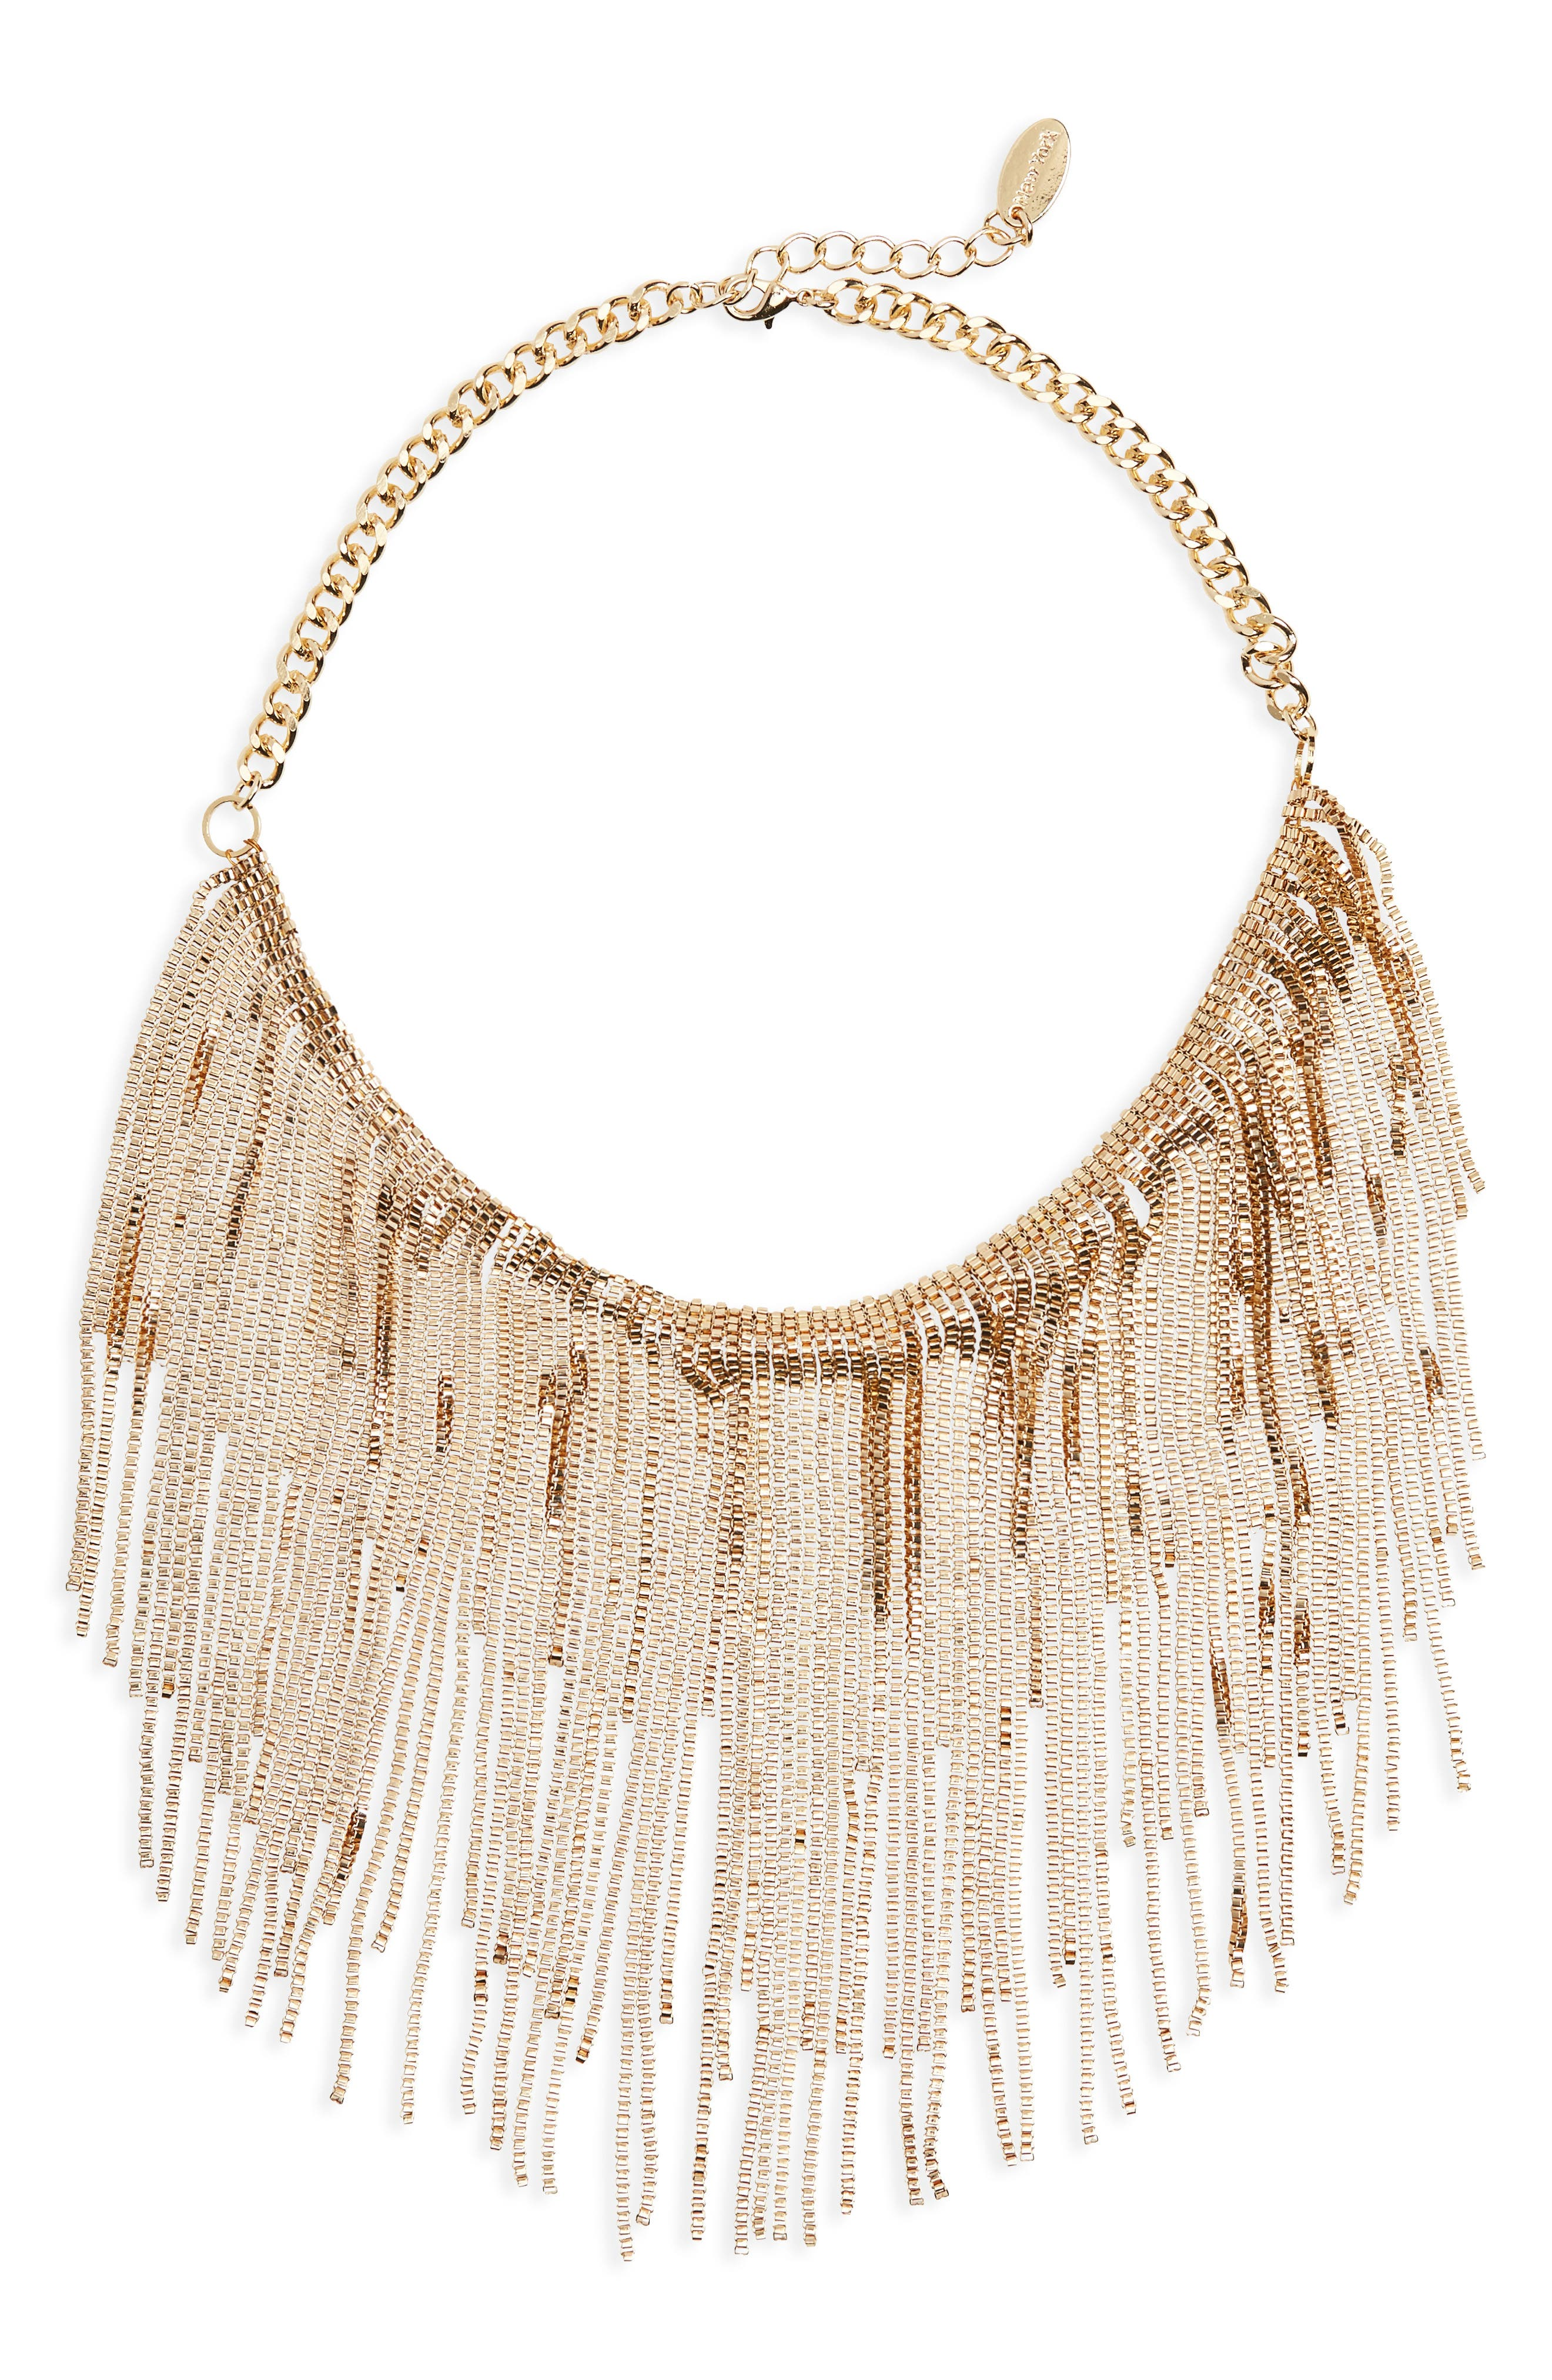 Main Image - Cara Linear Chain Necklace